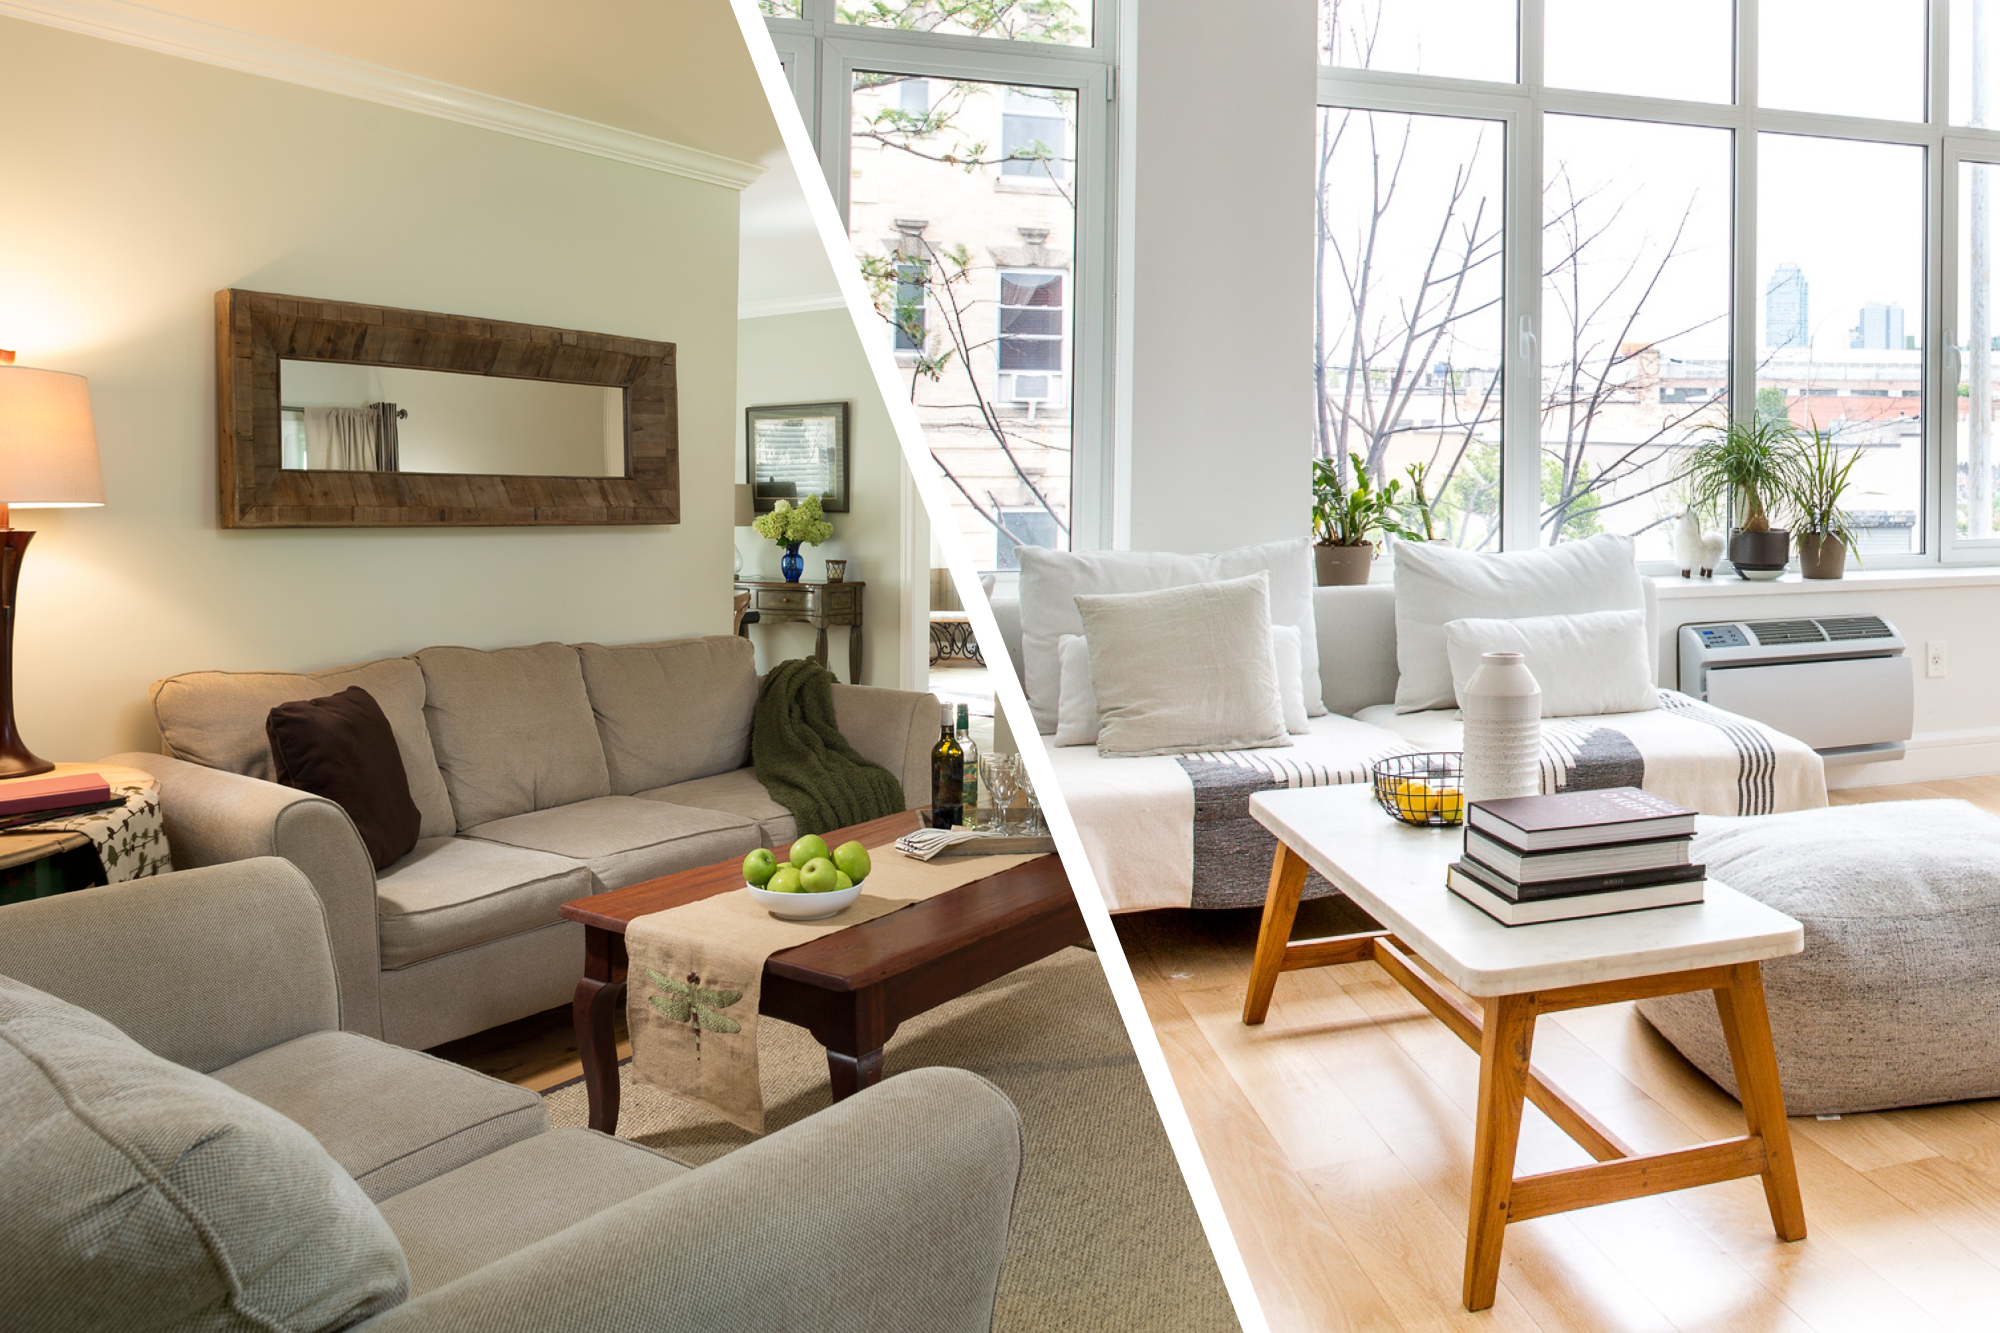 Us sweden real estate home buying comparison apartment therapy